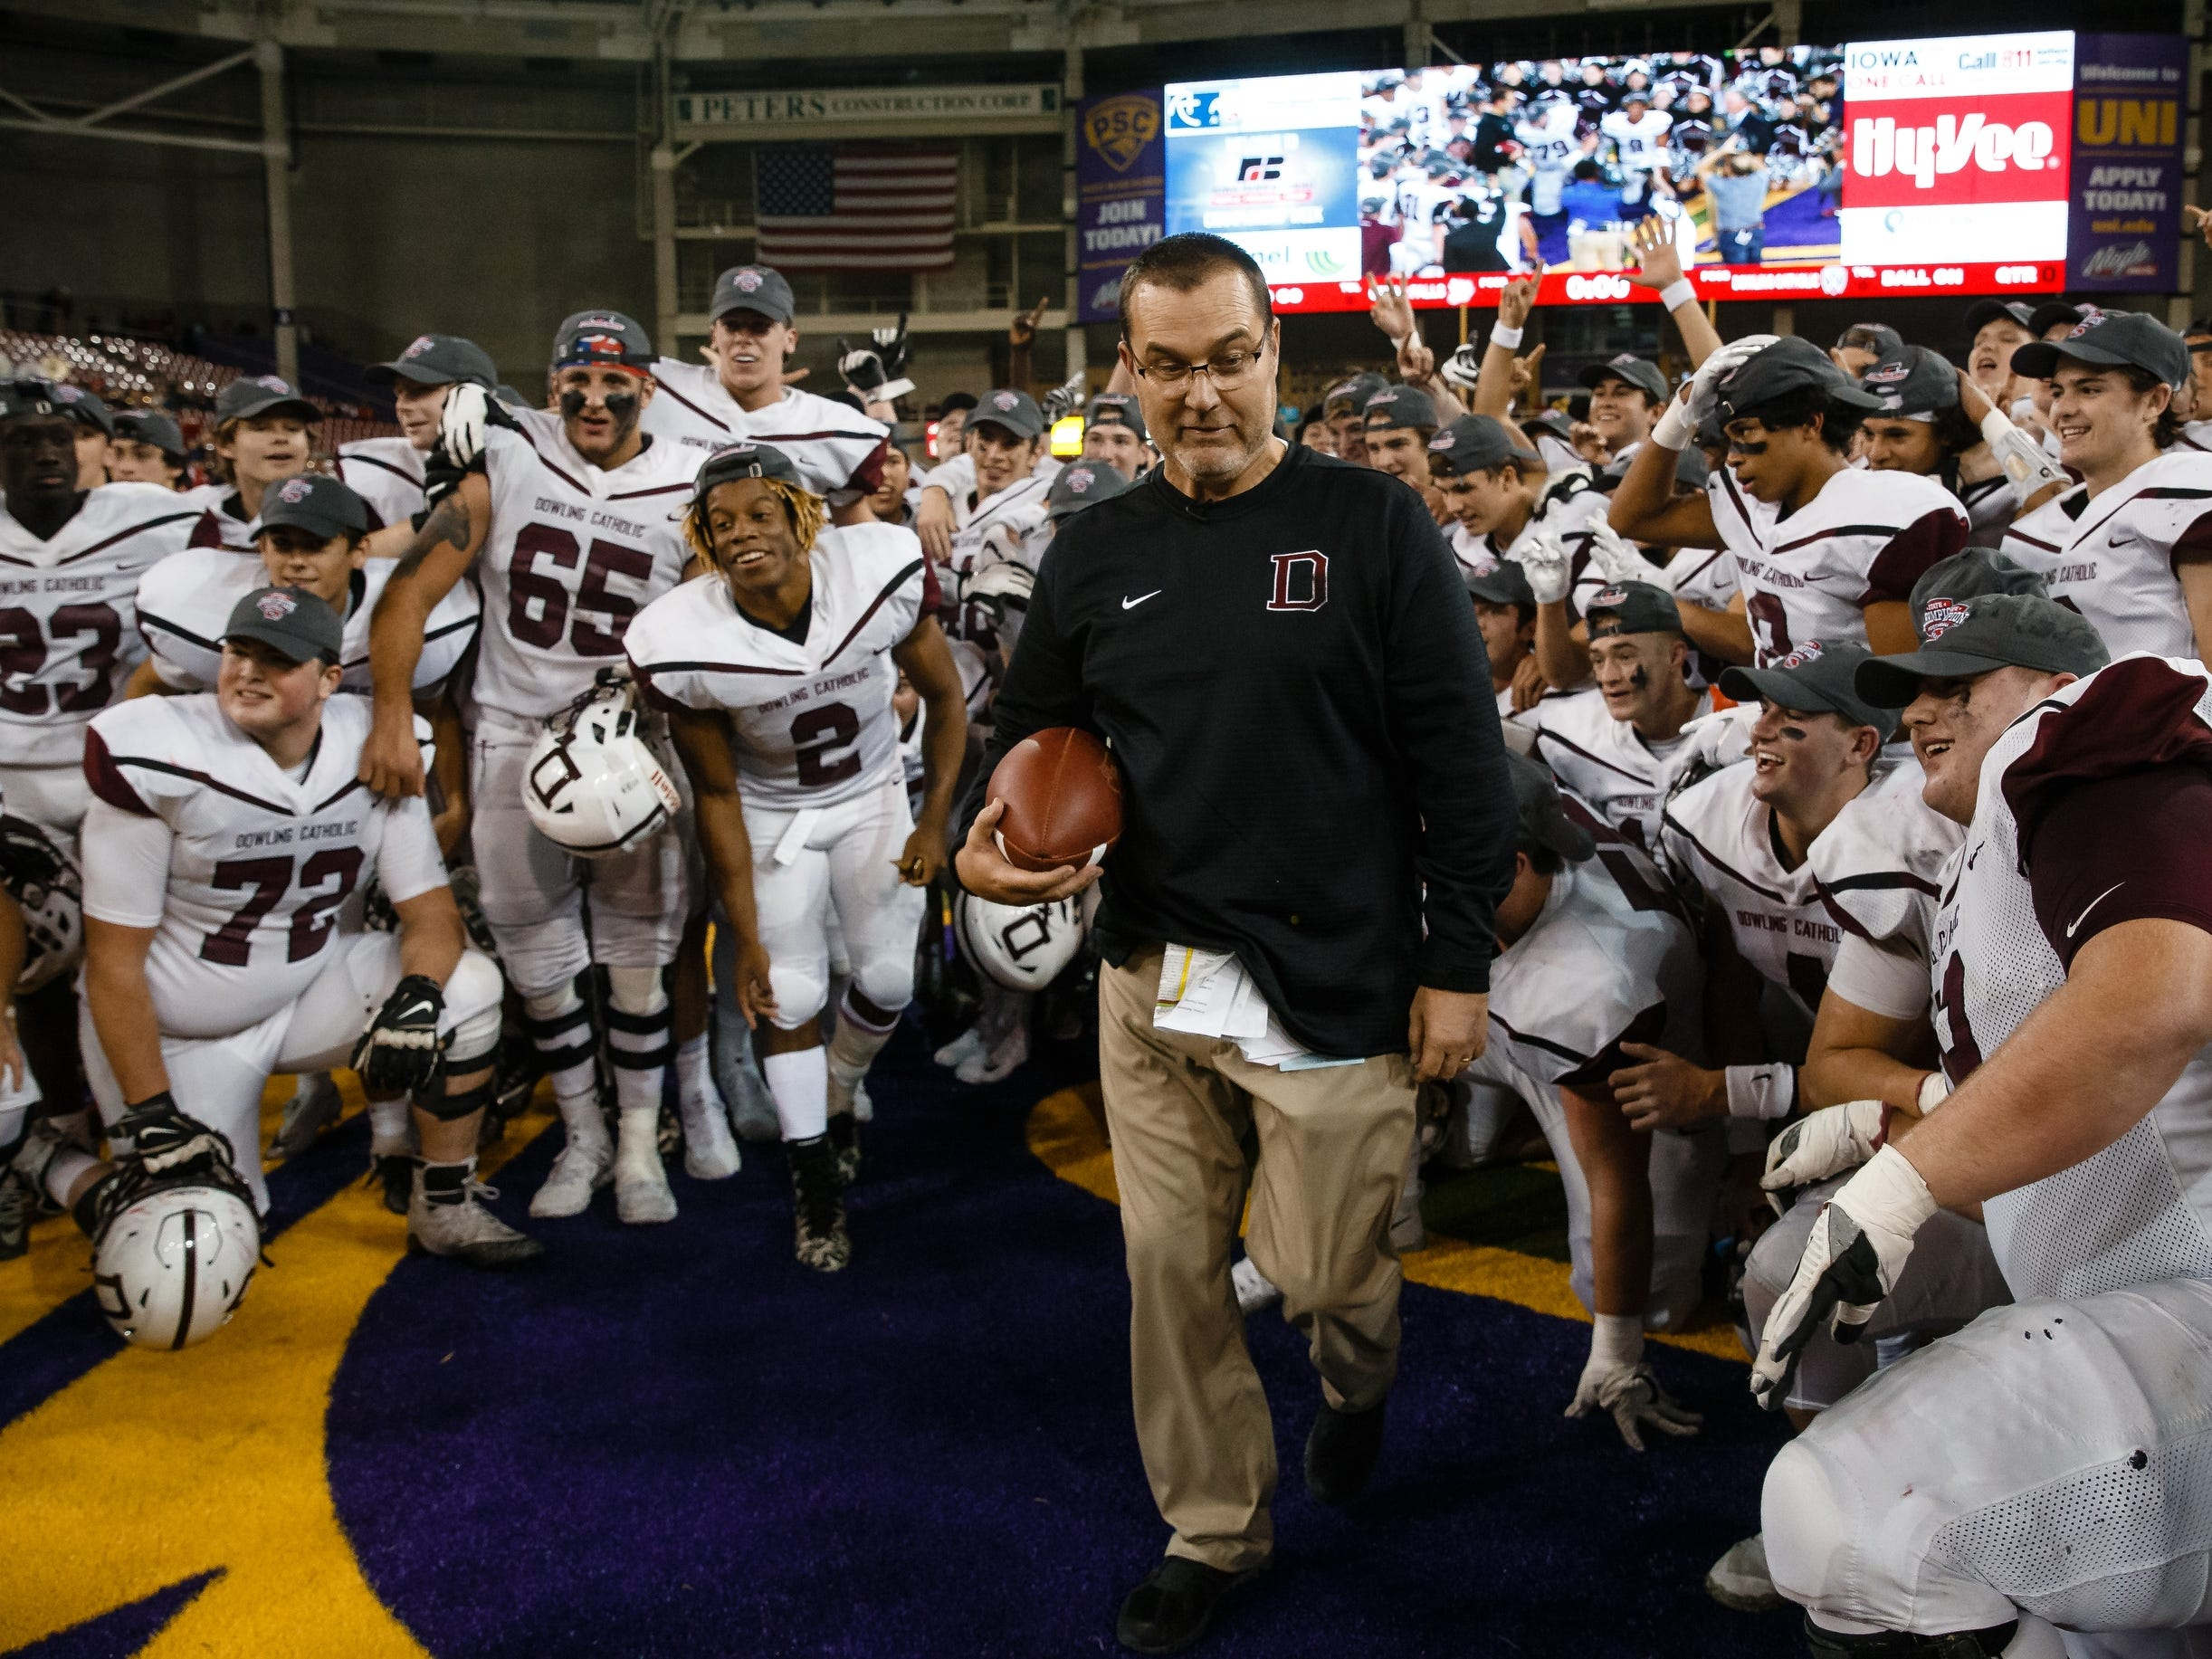 Dowling Catholic head coach Tom Wilson gets out of the way as his players jump to get their state championship trophy after defeating Cedar Falls 22-16 on Friday, Nov. 16, 2018, in Cedar Falls.